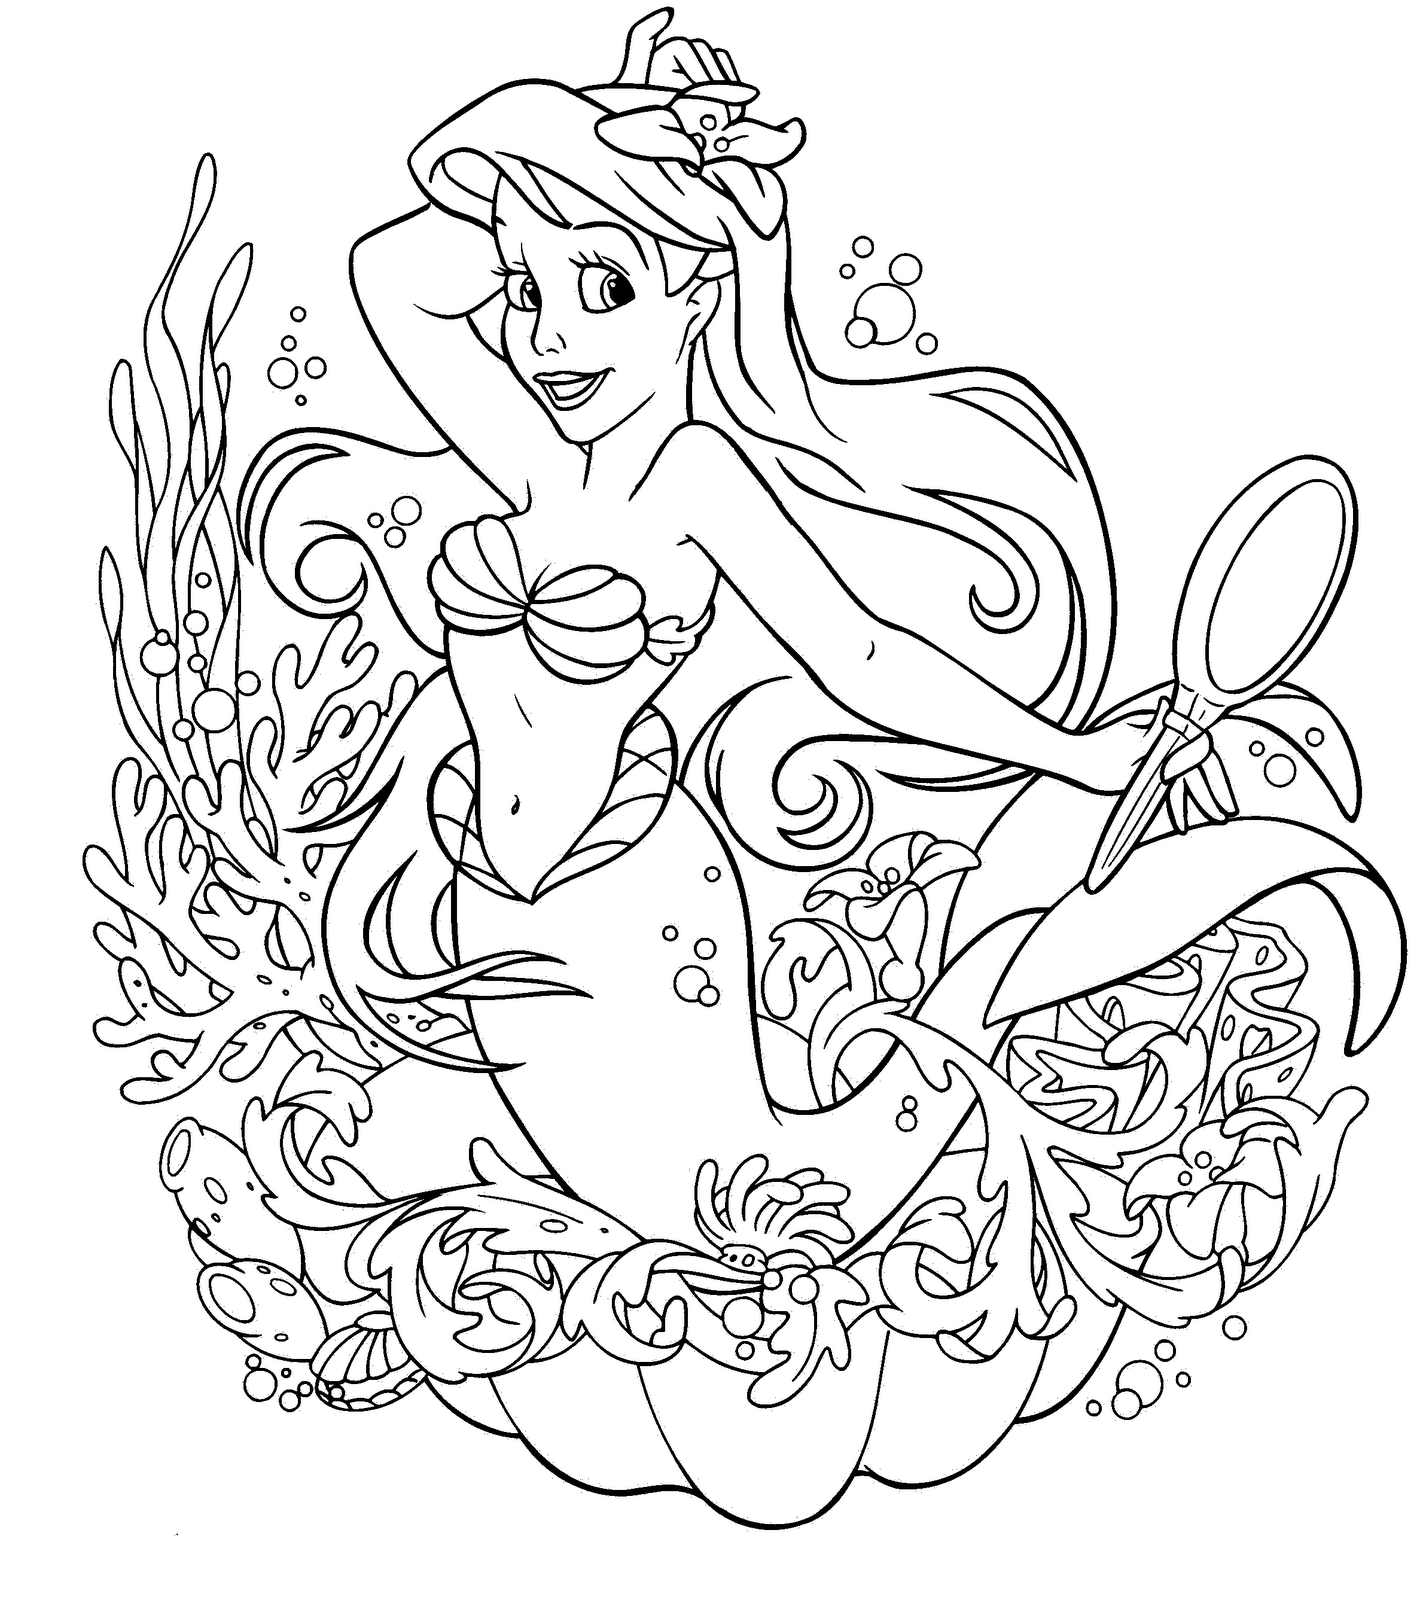 Disney Little Mermaid Coloring Page